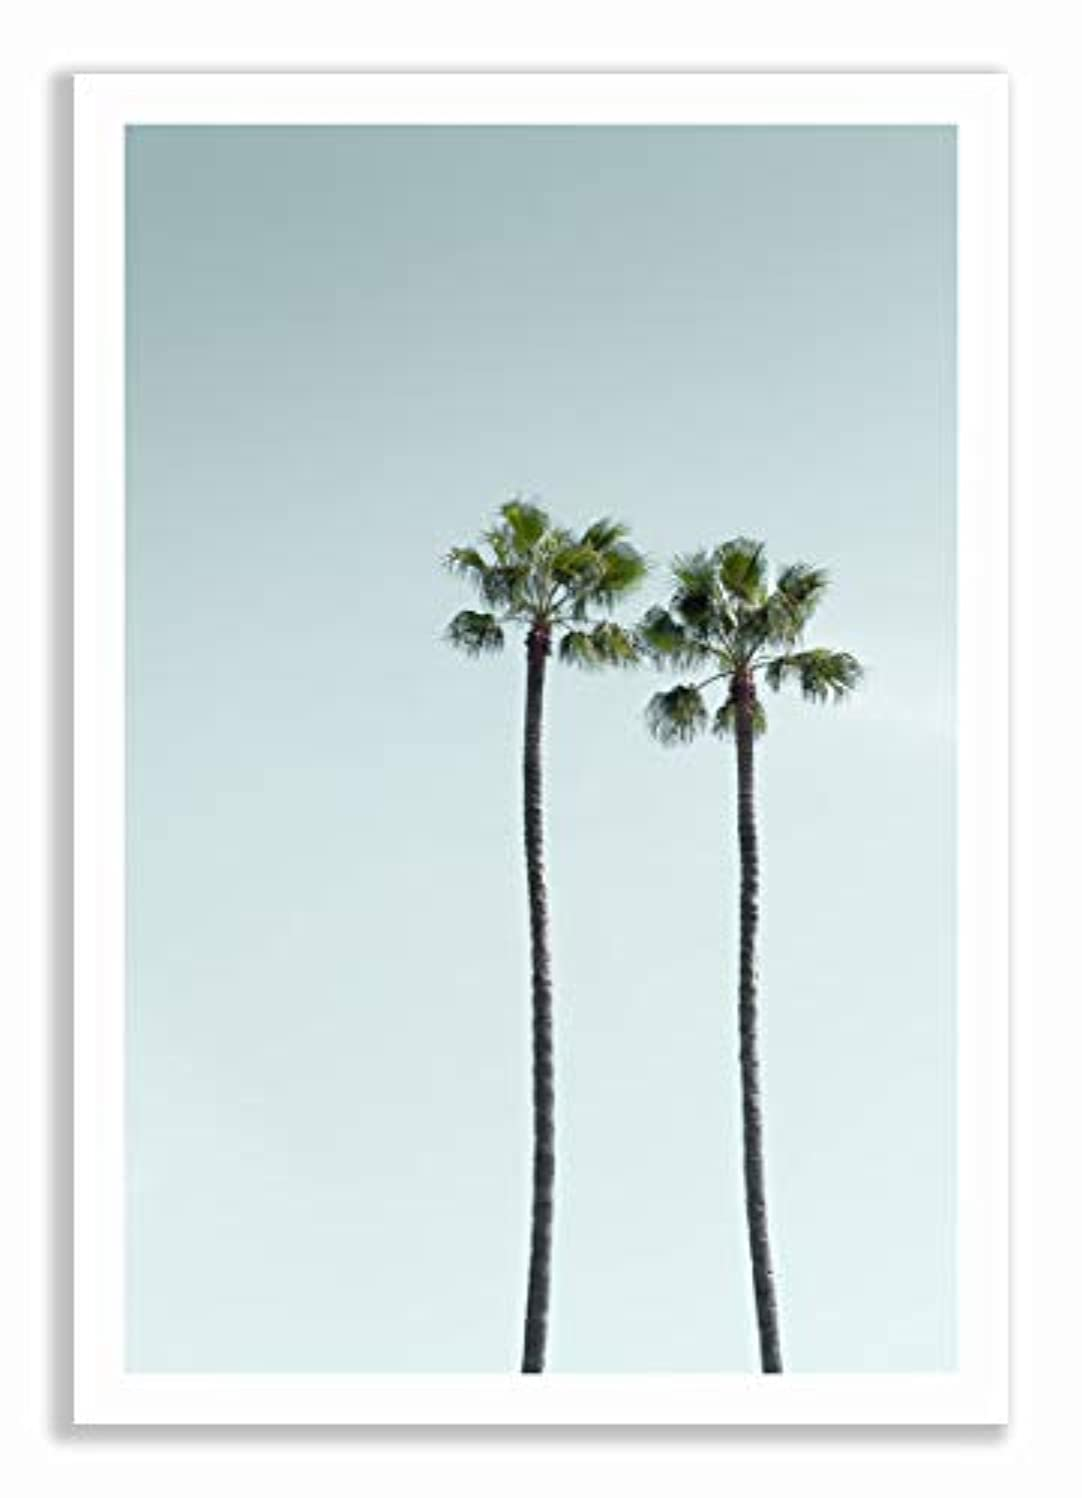 Los Angeles Palm Trees, Black Satin Aluminium Frame, with Mount, Multicolored, 40x60